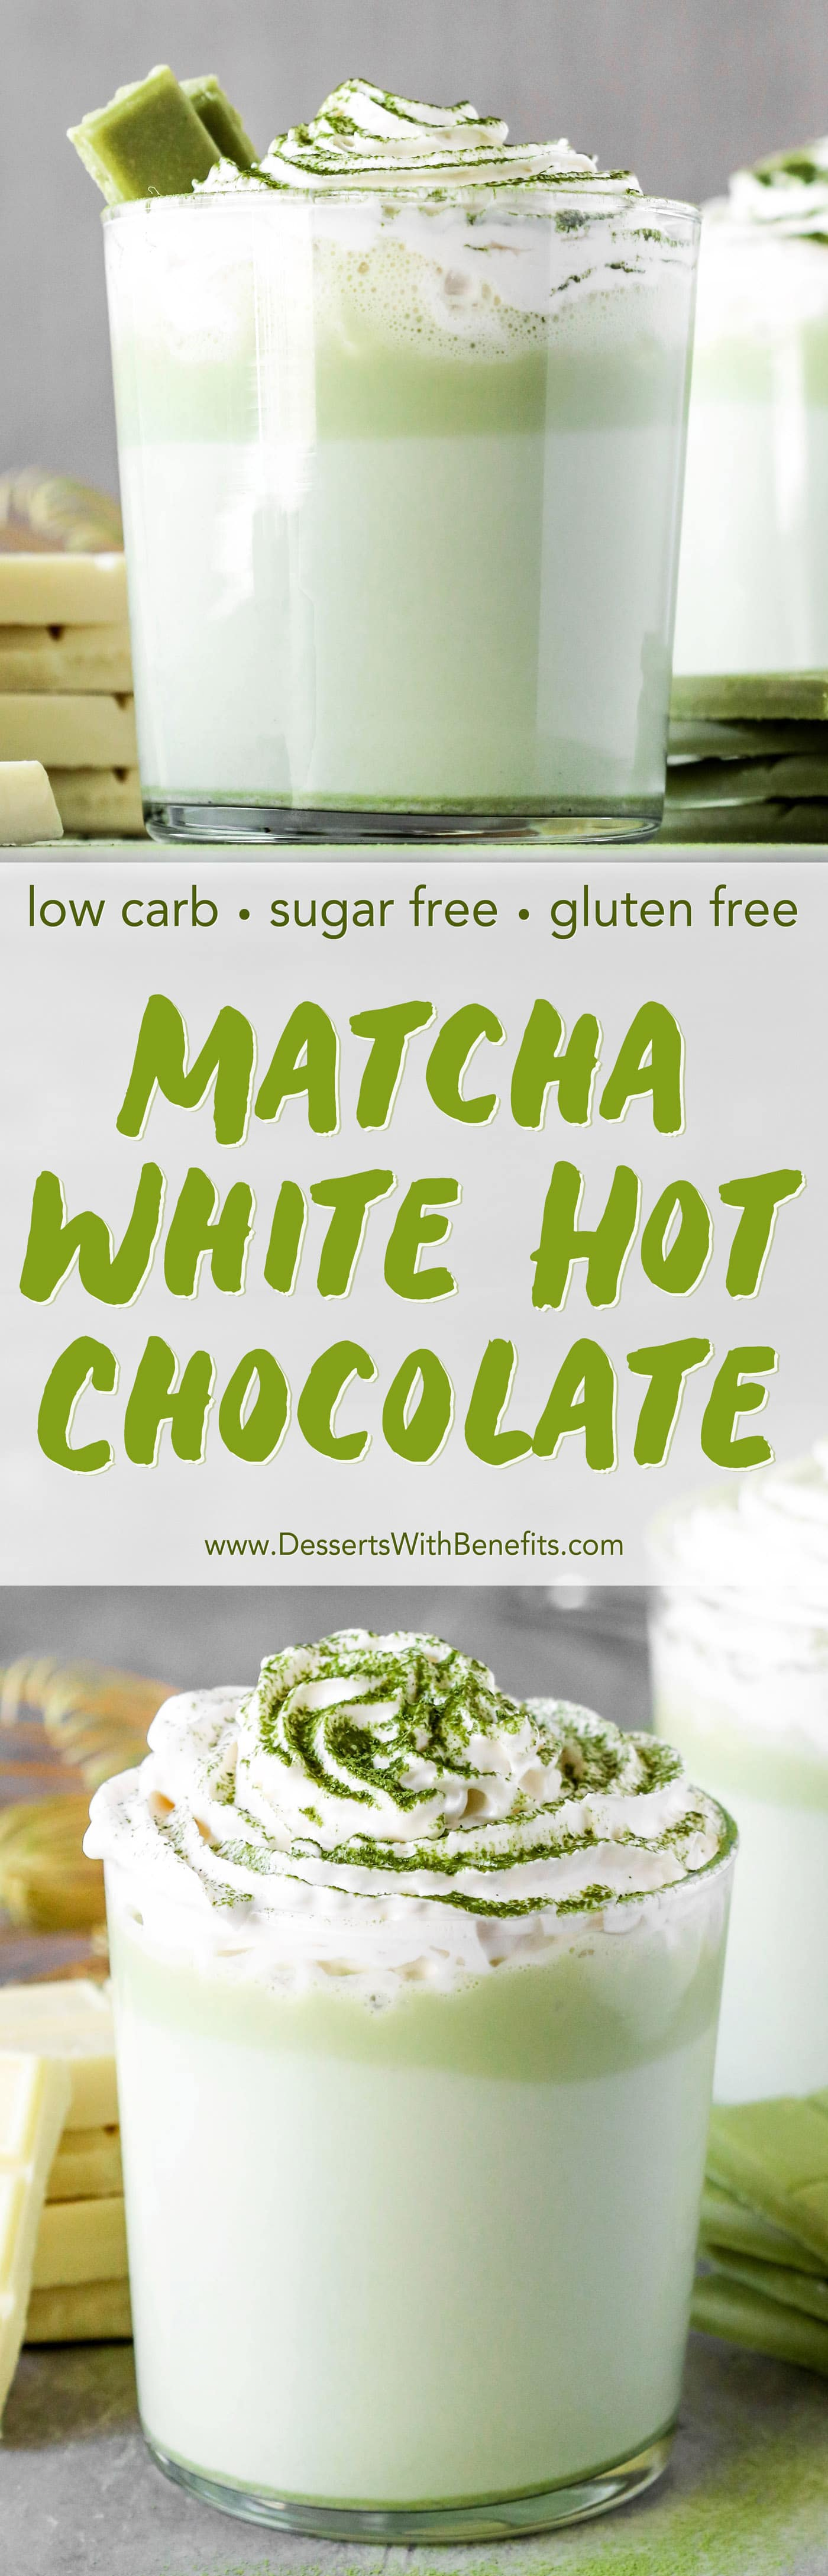 Swap out regular Hot Chocolate with this unique, fun, and sophisticated Matcha Green Tea White Hot Chocolate -- it'll be your new favorite winter treat. It's sugar free, low carb, and gluten free too! #sugarfree #lowcarb #healthychocolate #hotchocolate #healthydessert #hotchocolaterecipe #glutenfree #matchachocolate #healthymatcharecipes #matchadessert #matchatea